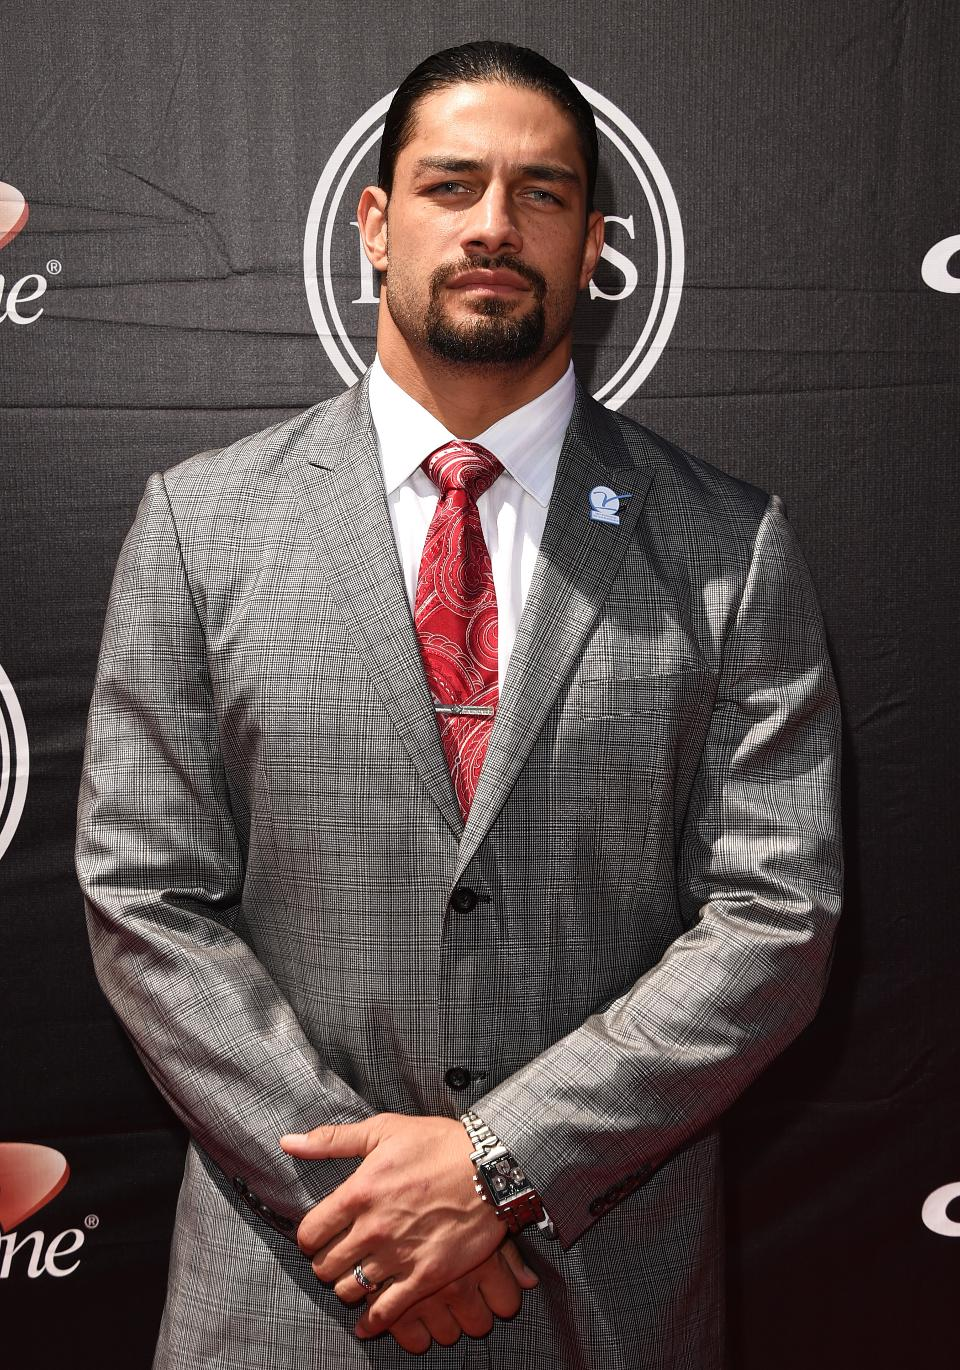 Rumor: Roman Reigns Expected to Defeat Seth Rollins at u0026quot;Money in the Banku0026quot;